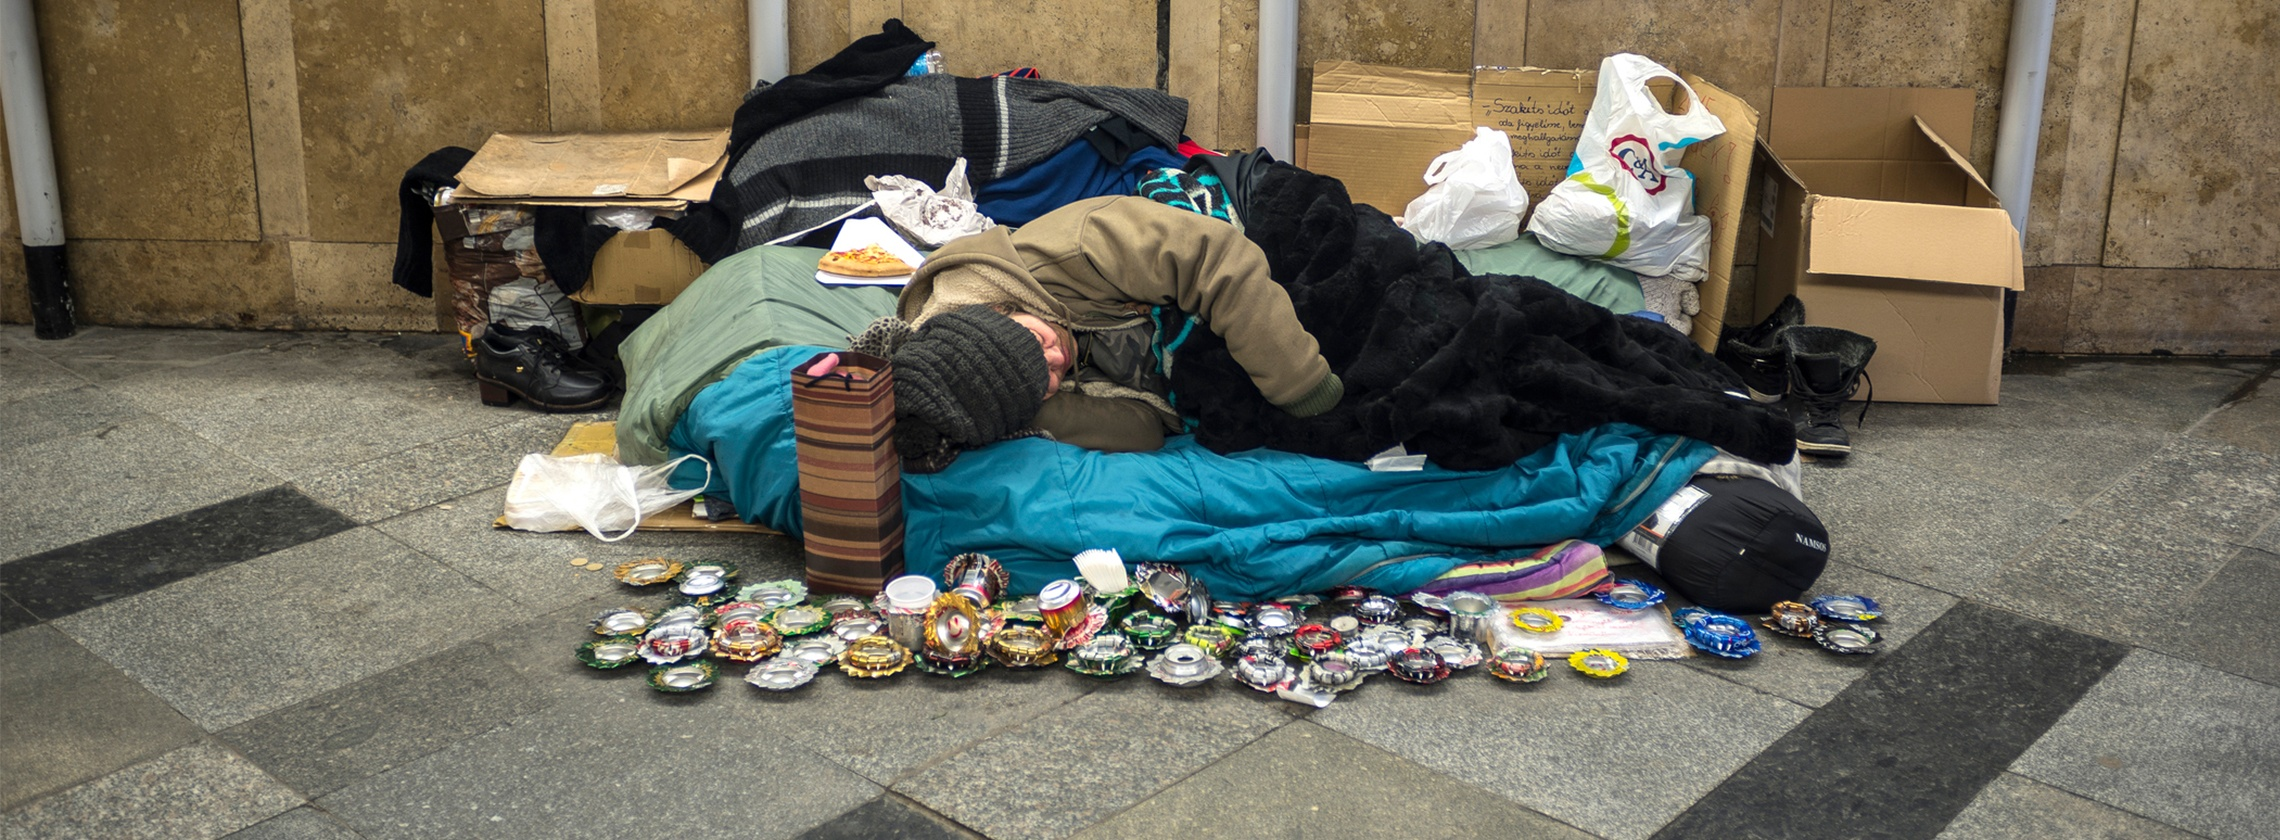 Police Officer Sues Seattle for Toxic Exposure During 'Homeless' Cleanup